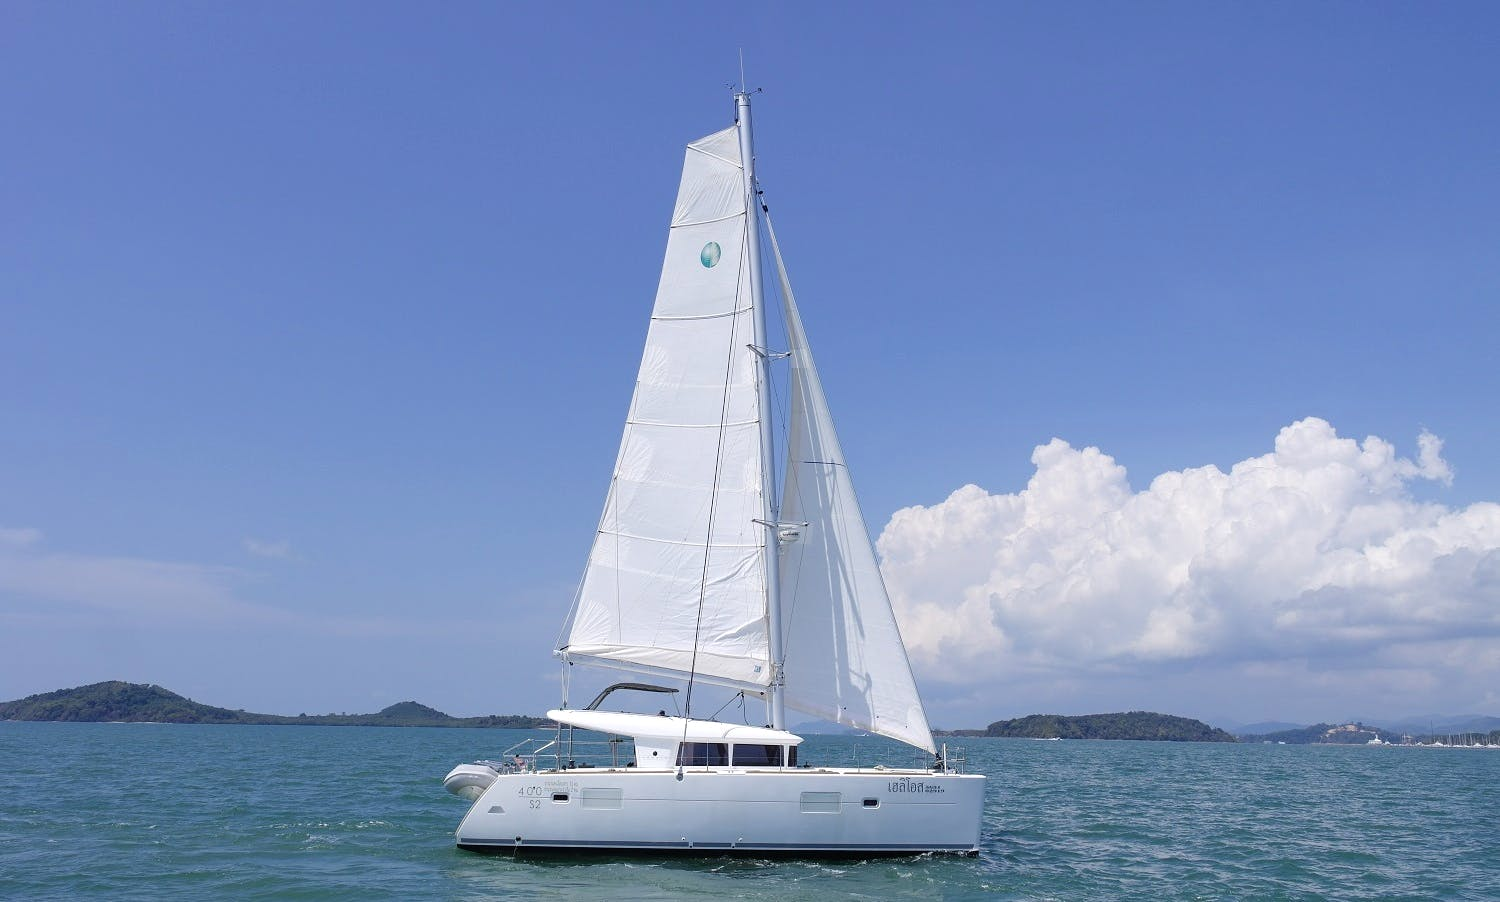 Charter an 8 person Lagoon Sailing Catamaran in Tambon Pa Klok, Thailand